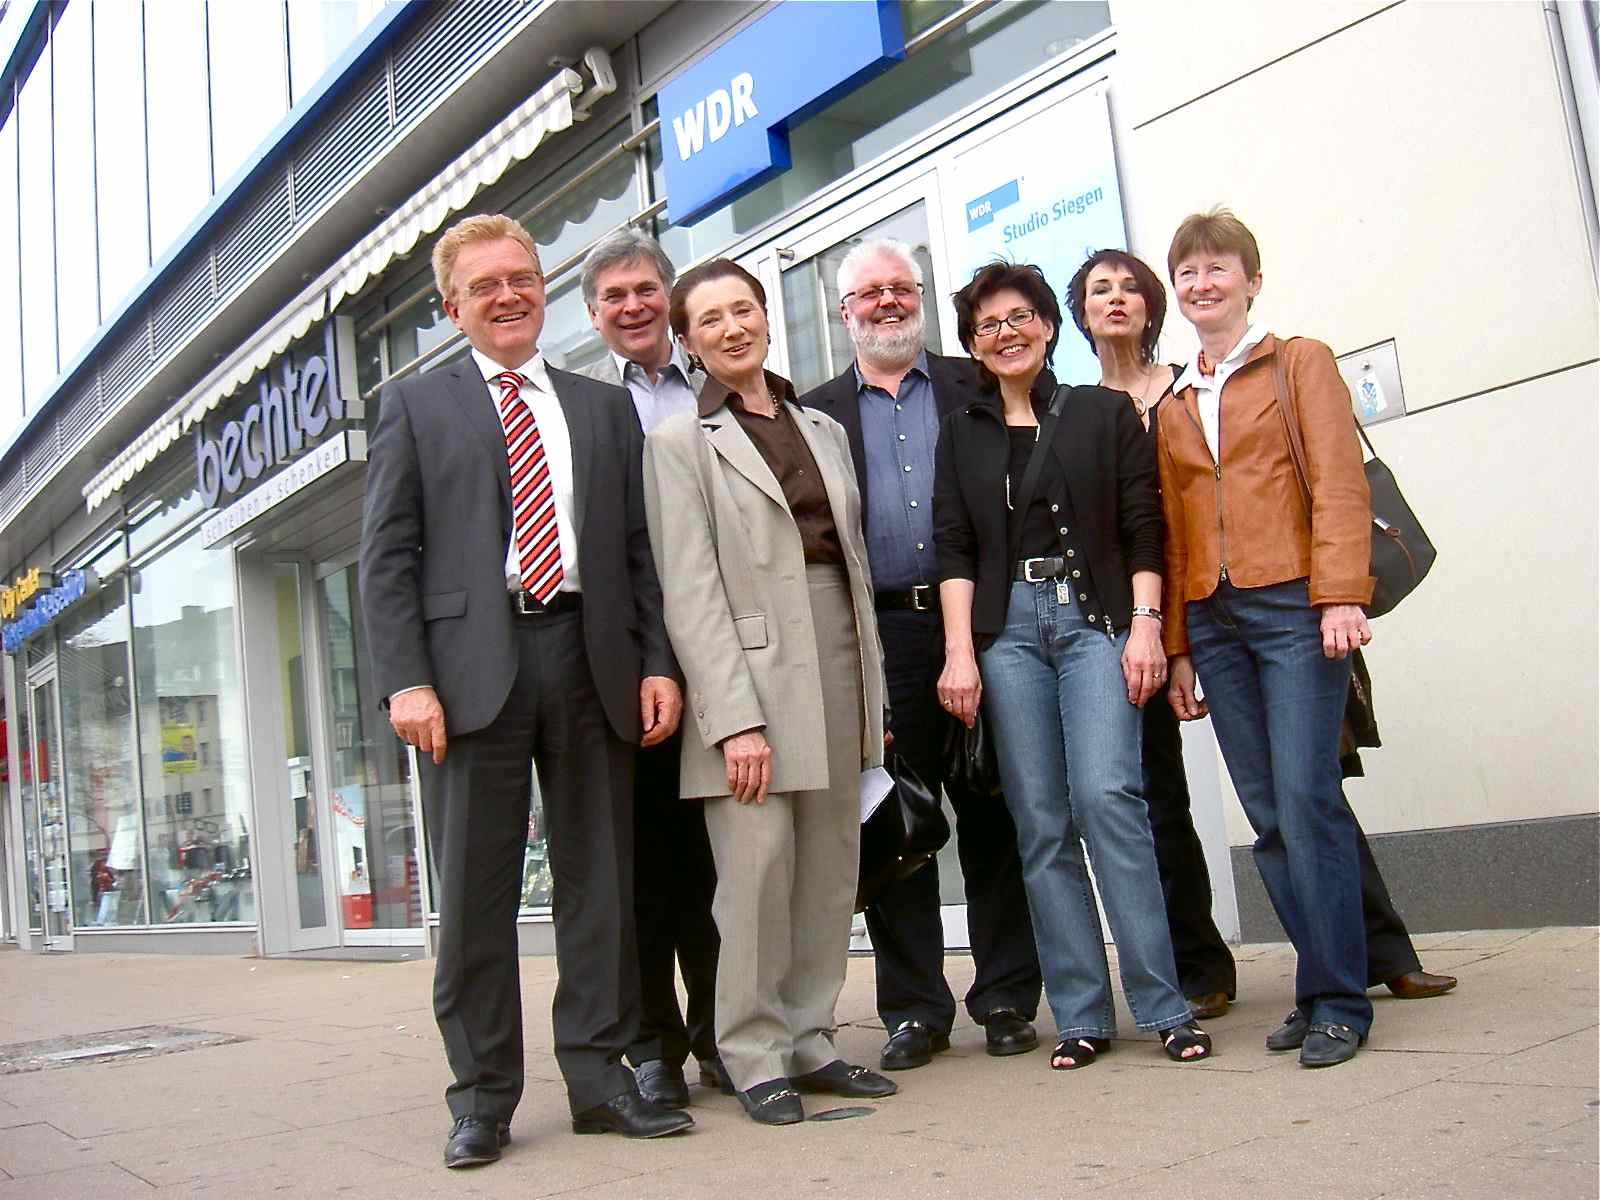 WDR Gruppe